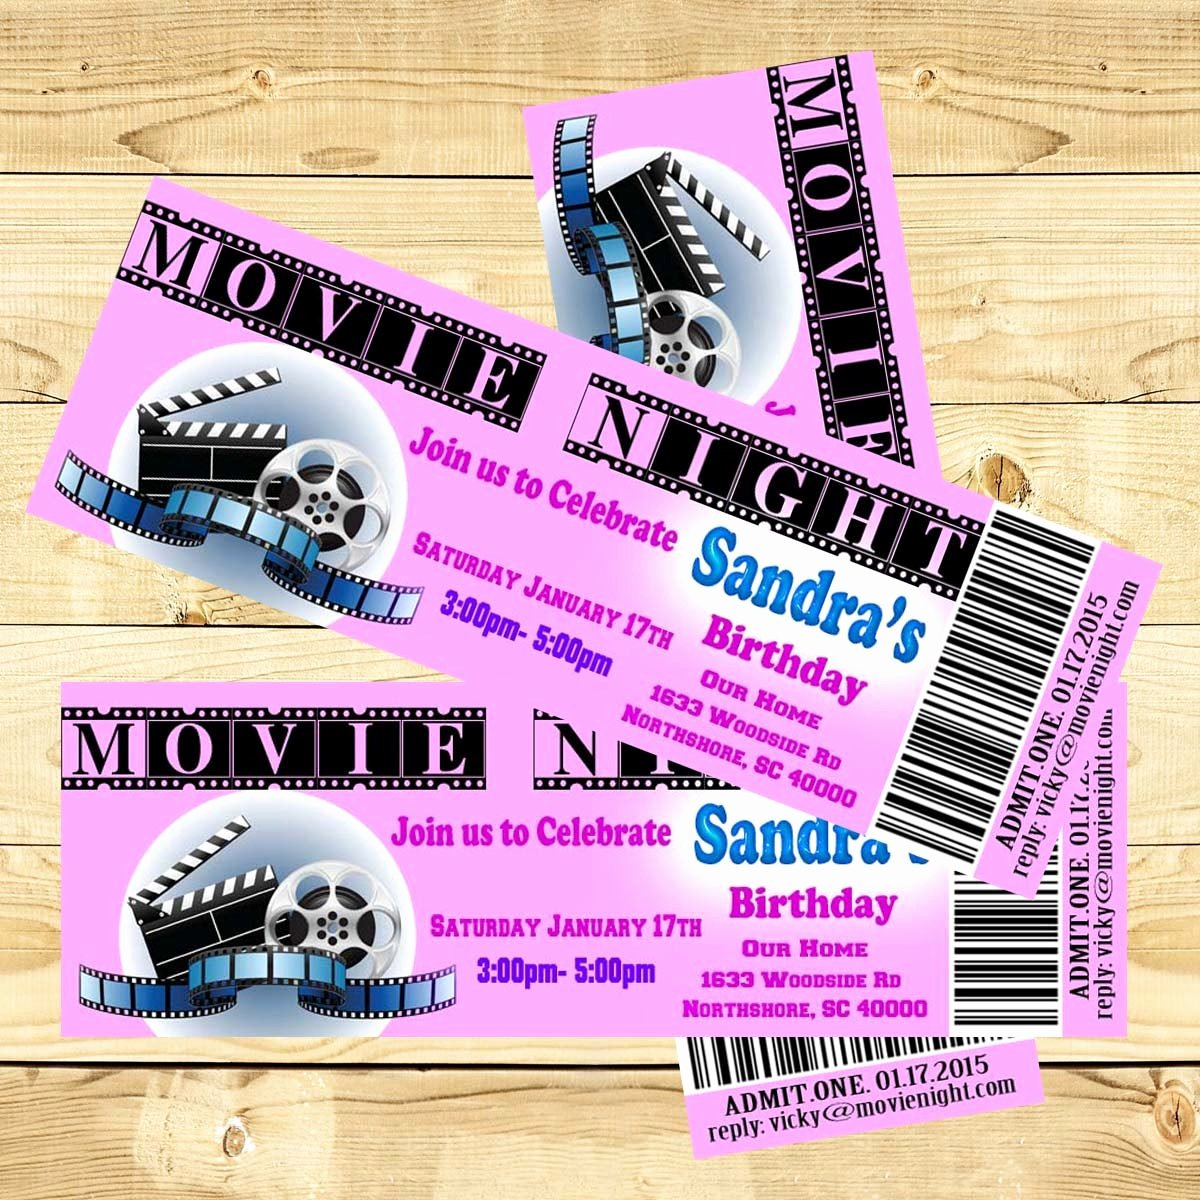 Movie Ticket Birthday Invitation Fresh Birthday Invitation Movie Ticket Personalized Invite Printable